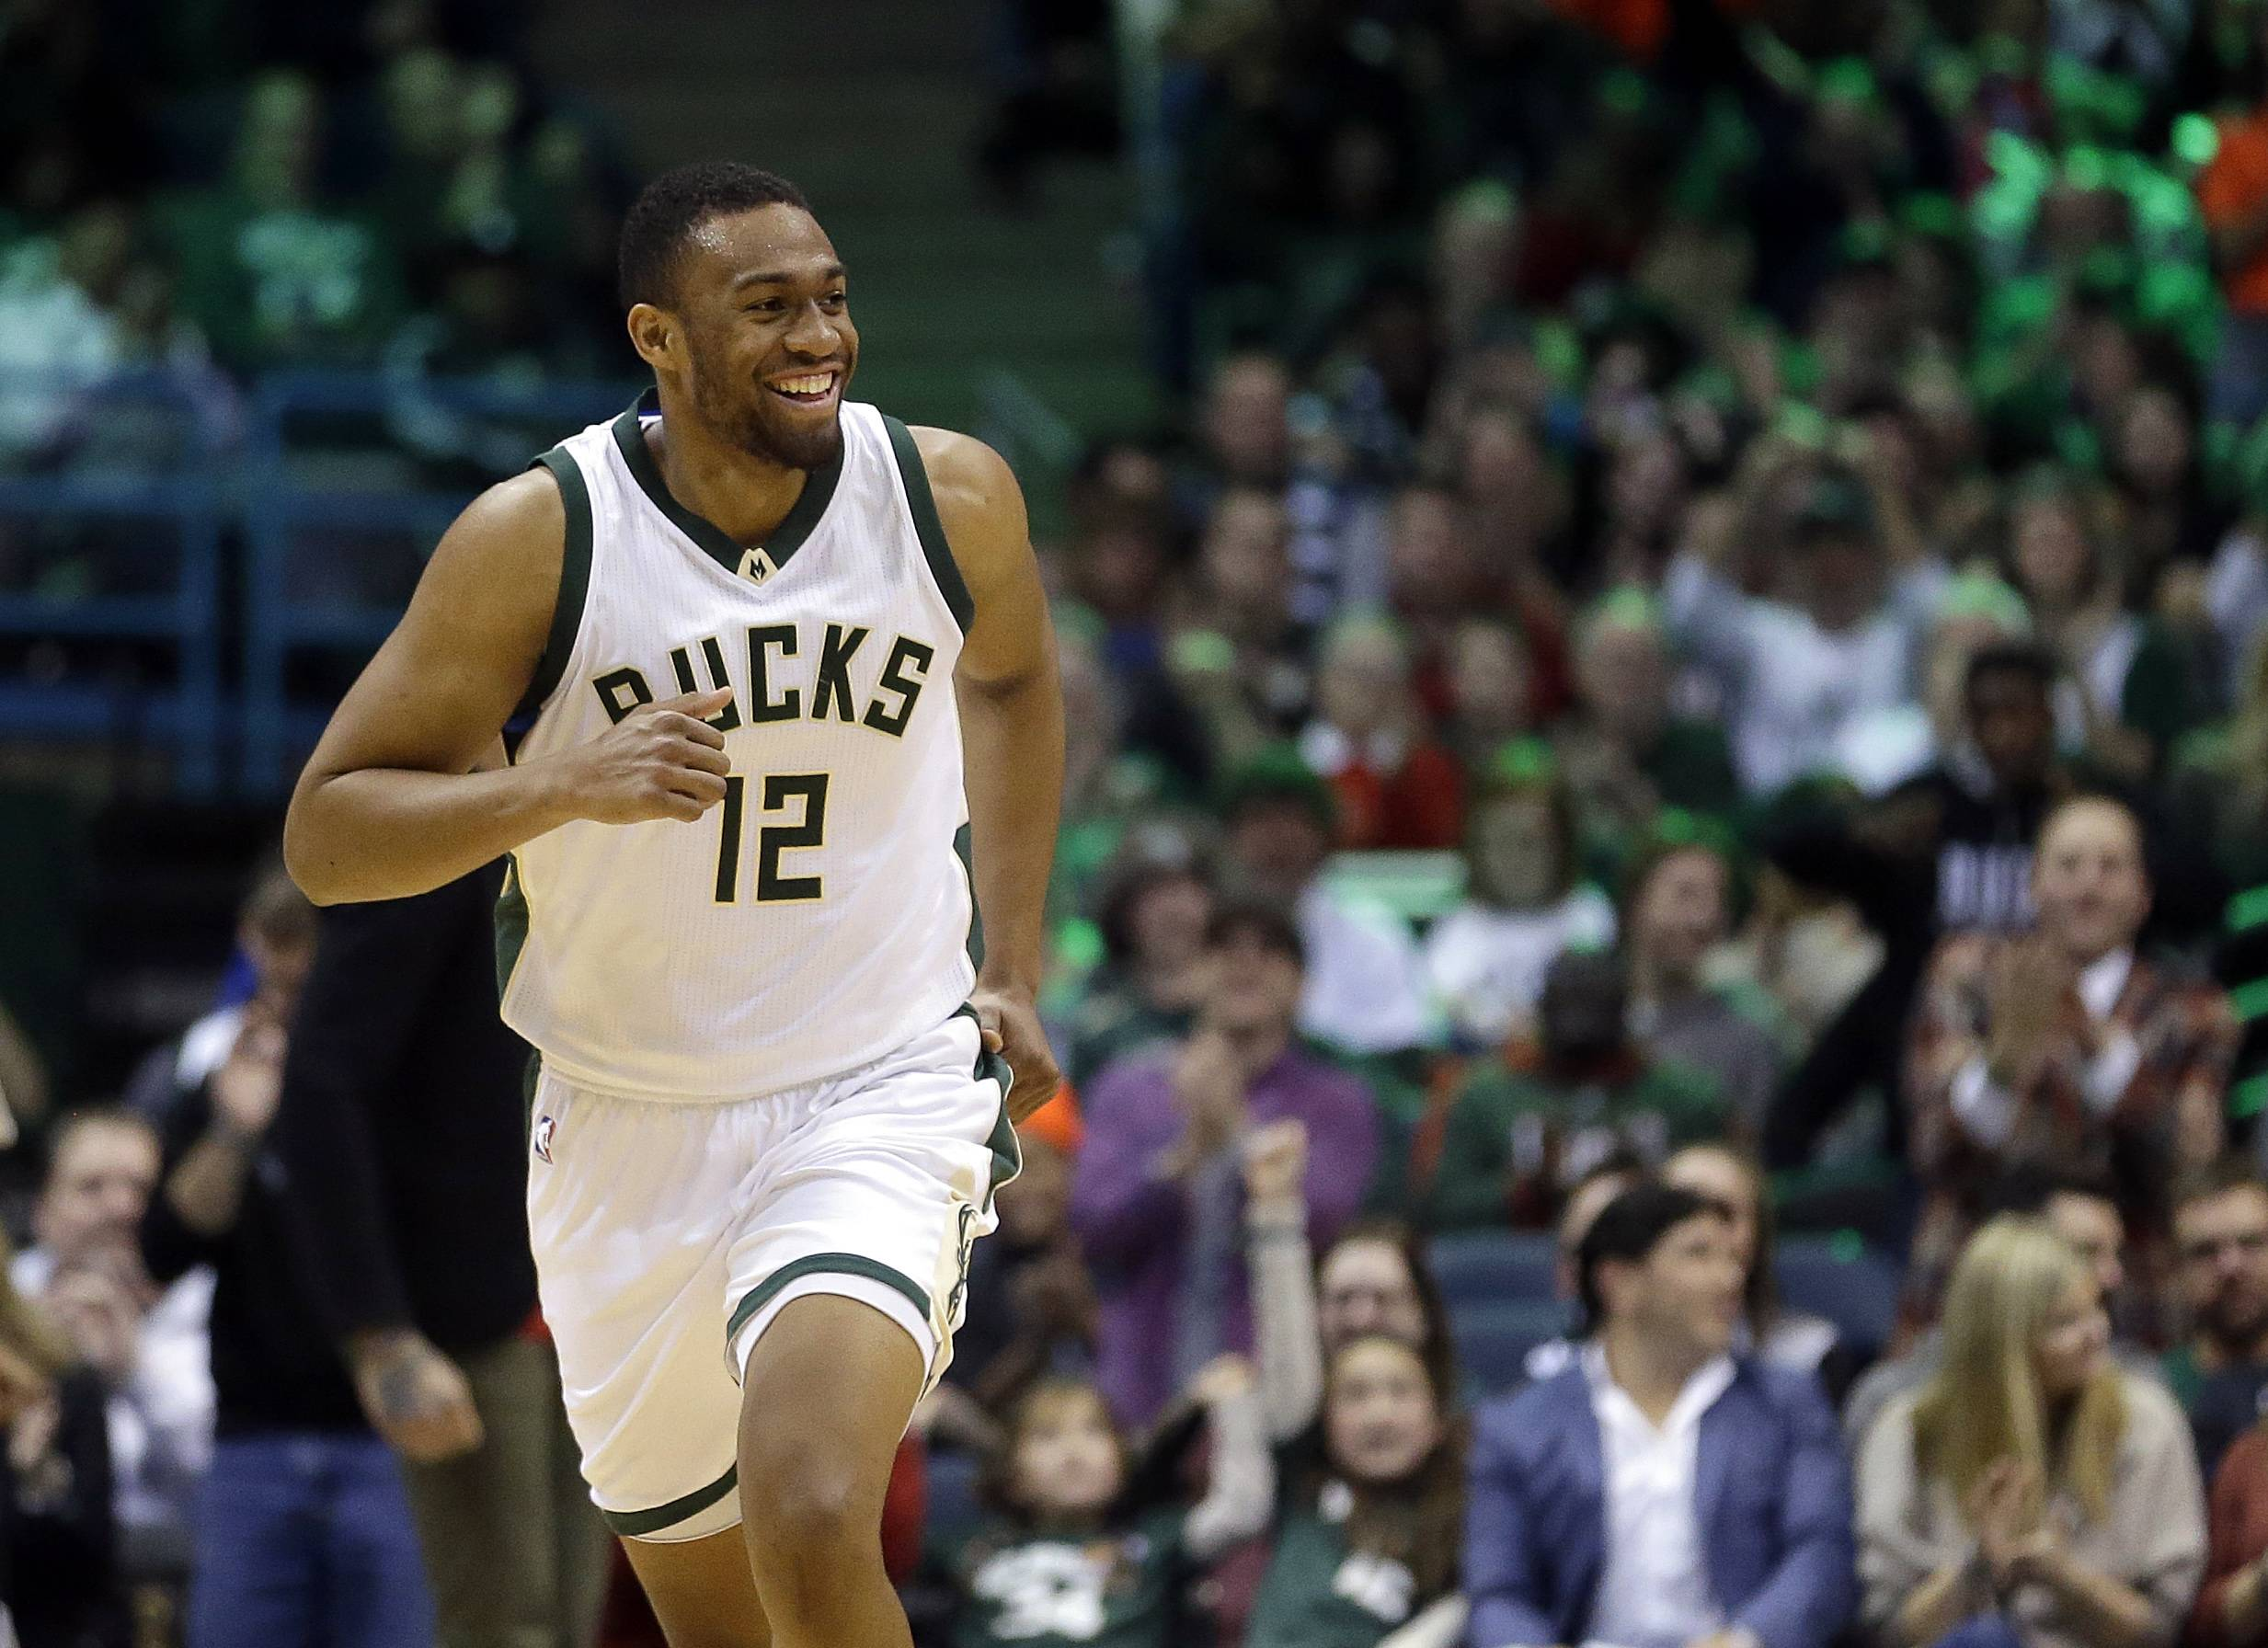 Bucks forward Jabari Parker, a Chicago native, is taking a slower path to recovery than Bulls guard Zach LaVine. The players suffered the same injury last February, but Parker tore the ACL in his left knee for a second time. He isn't set to return until next month.